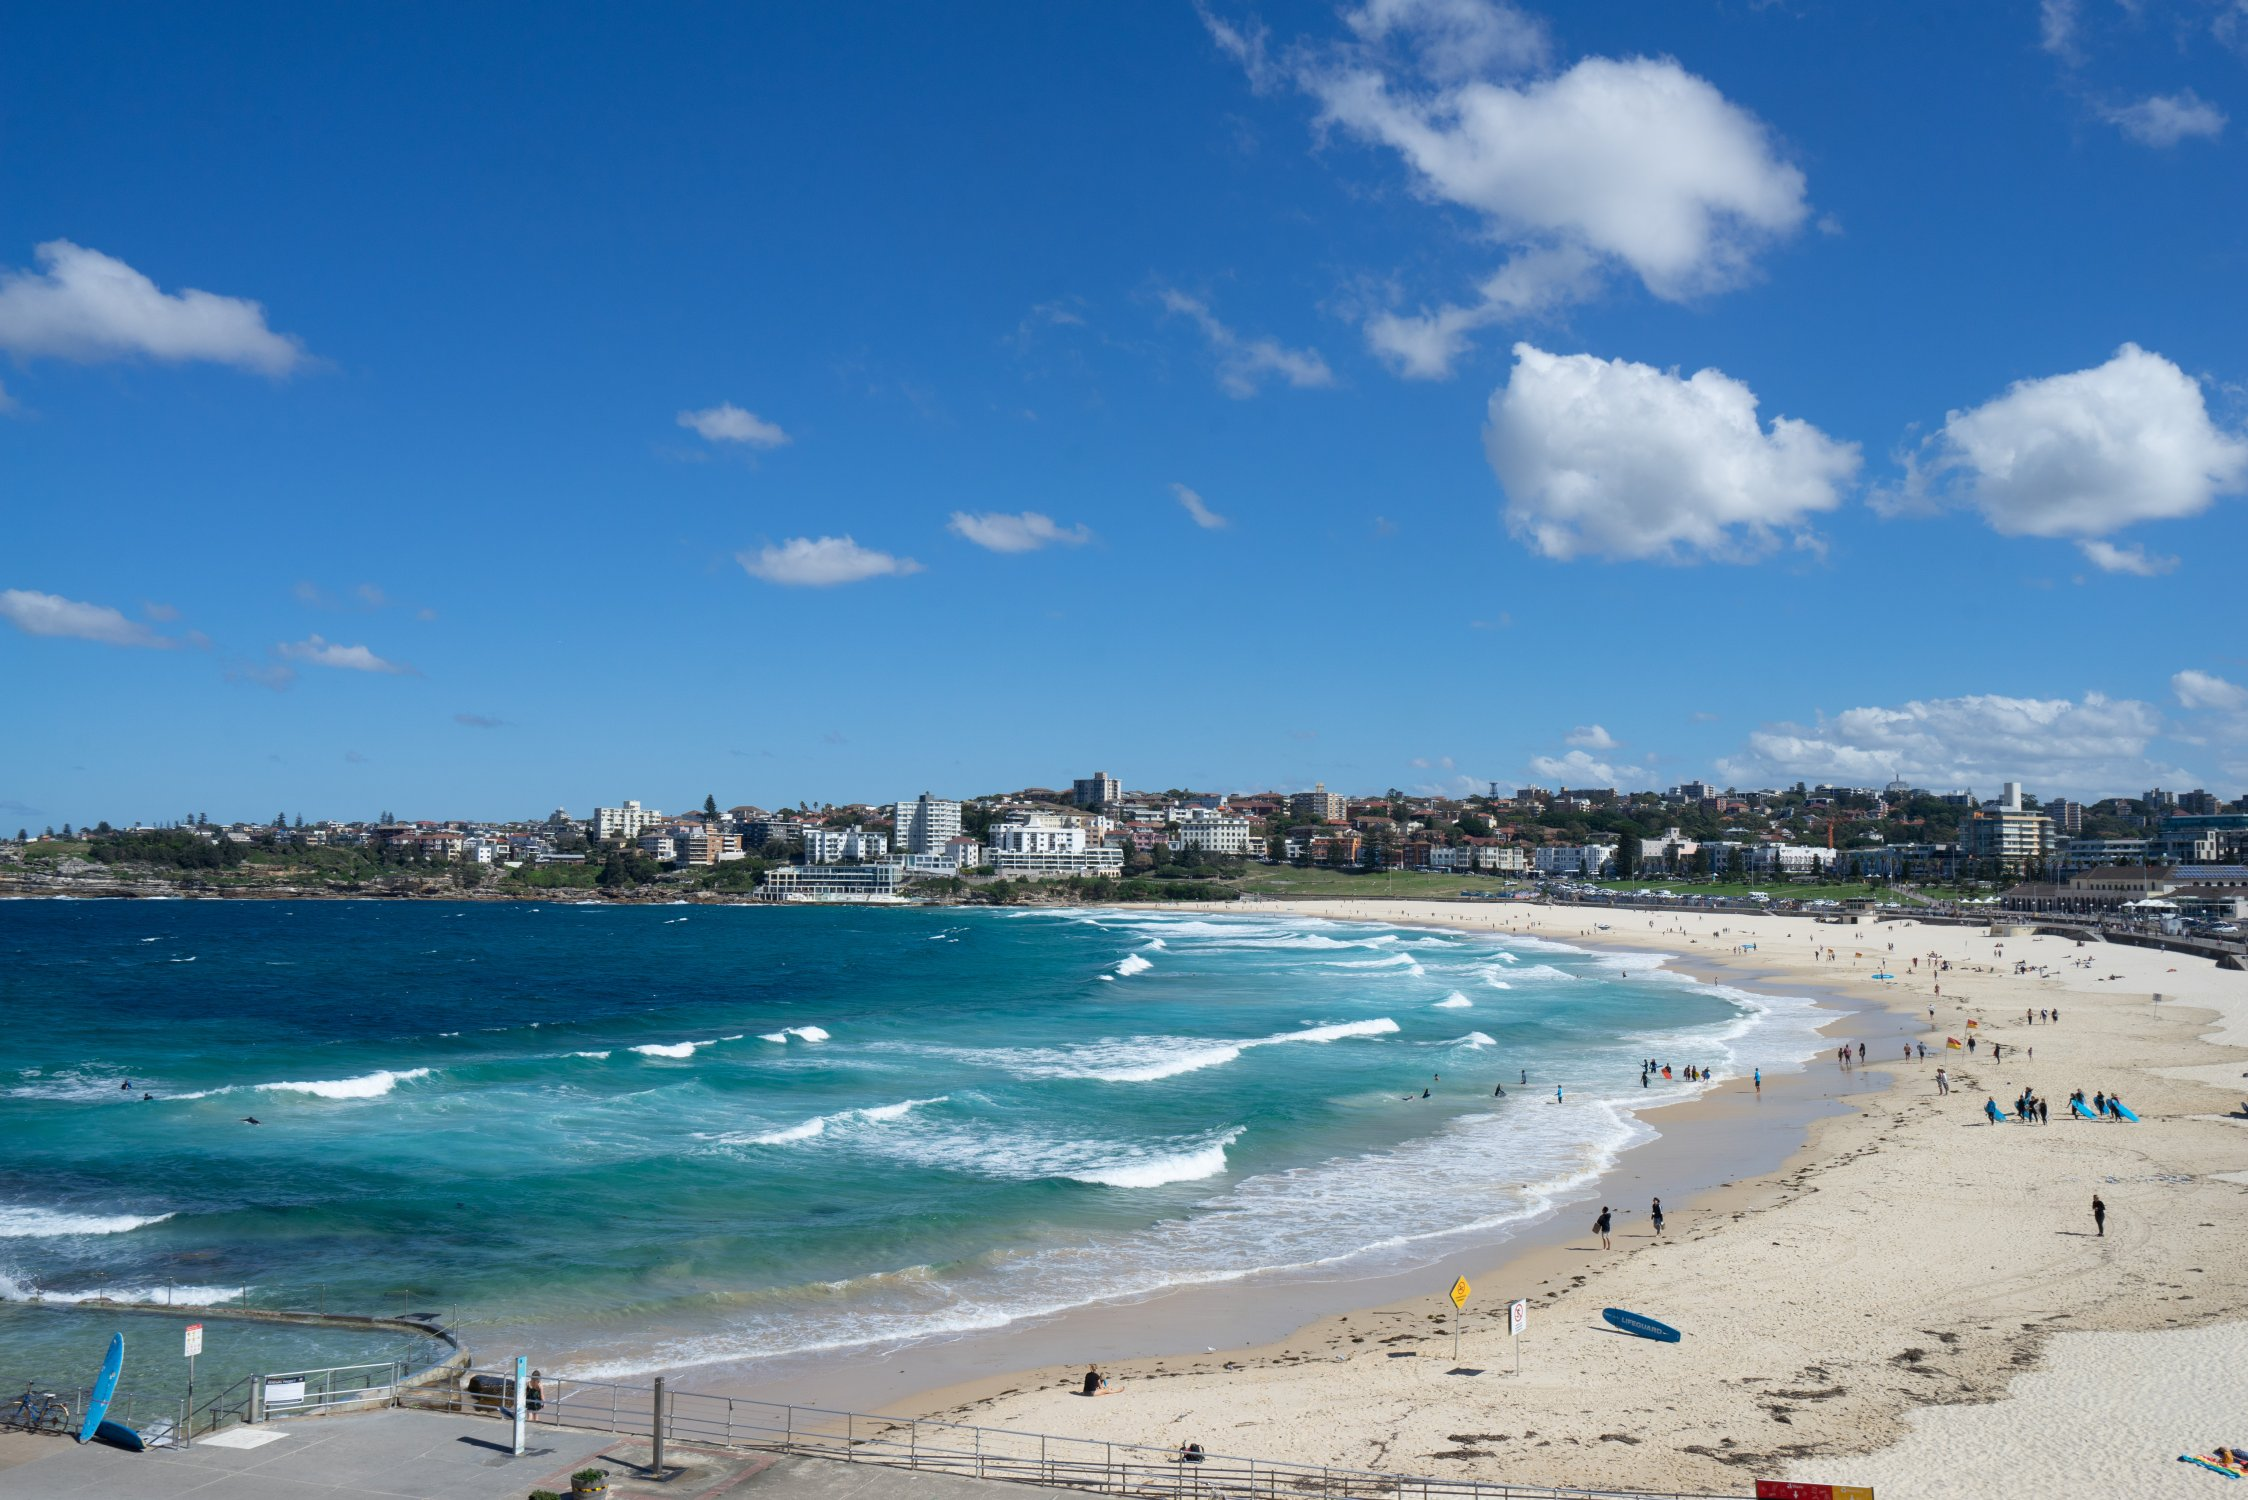 Kevin's place beachfront apartment. Bondi Beach Holiday Homes21.jpg